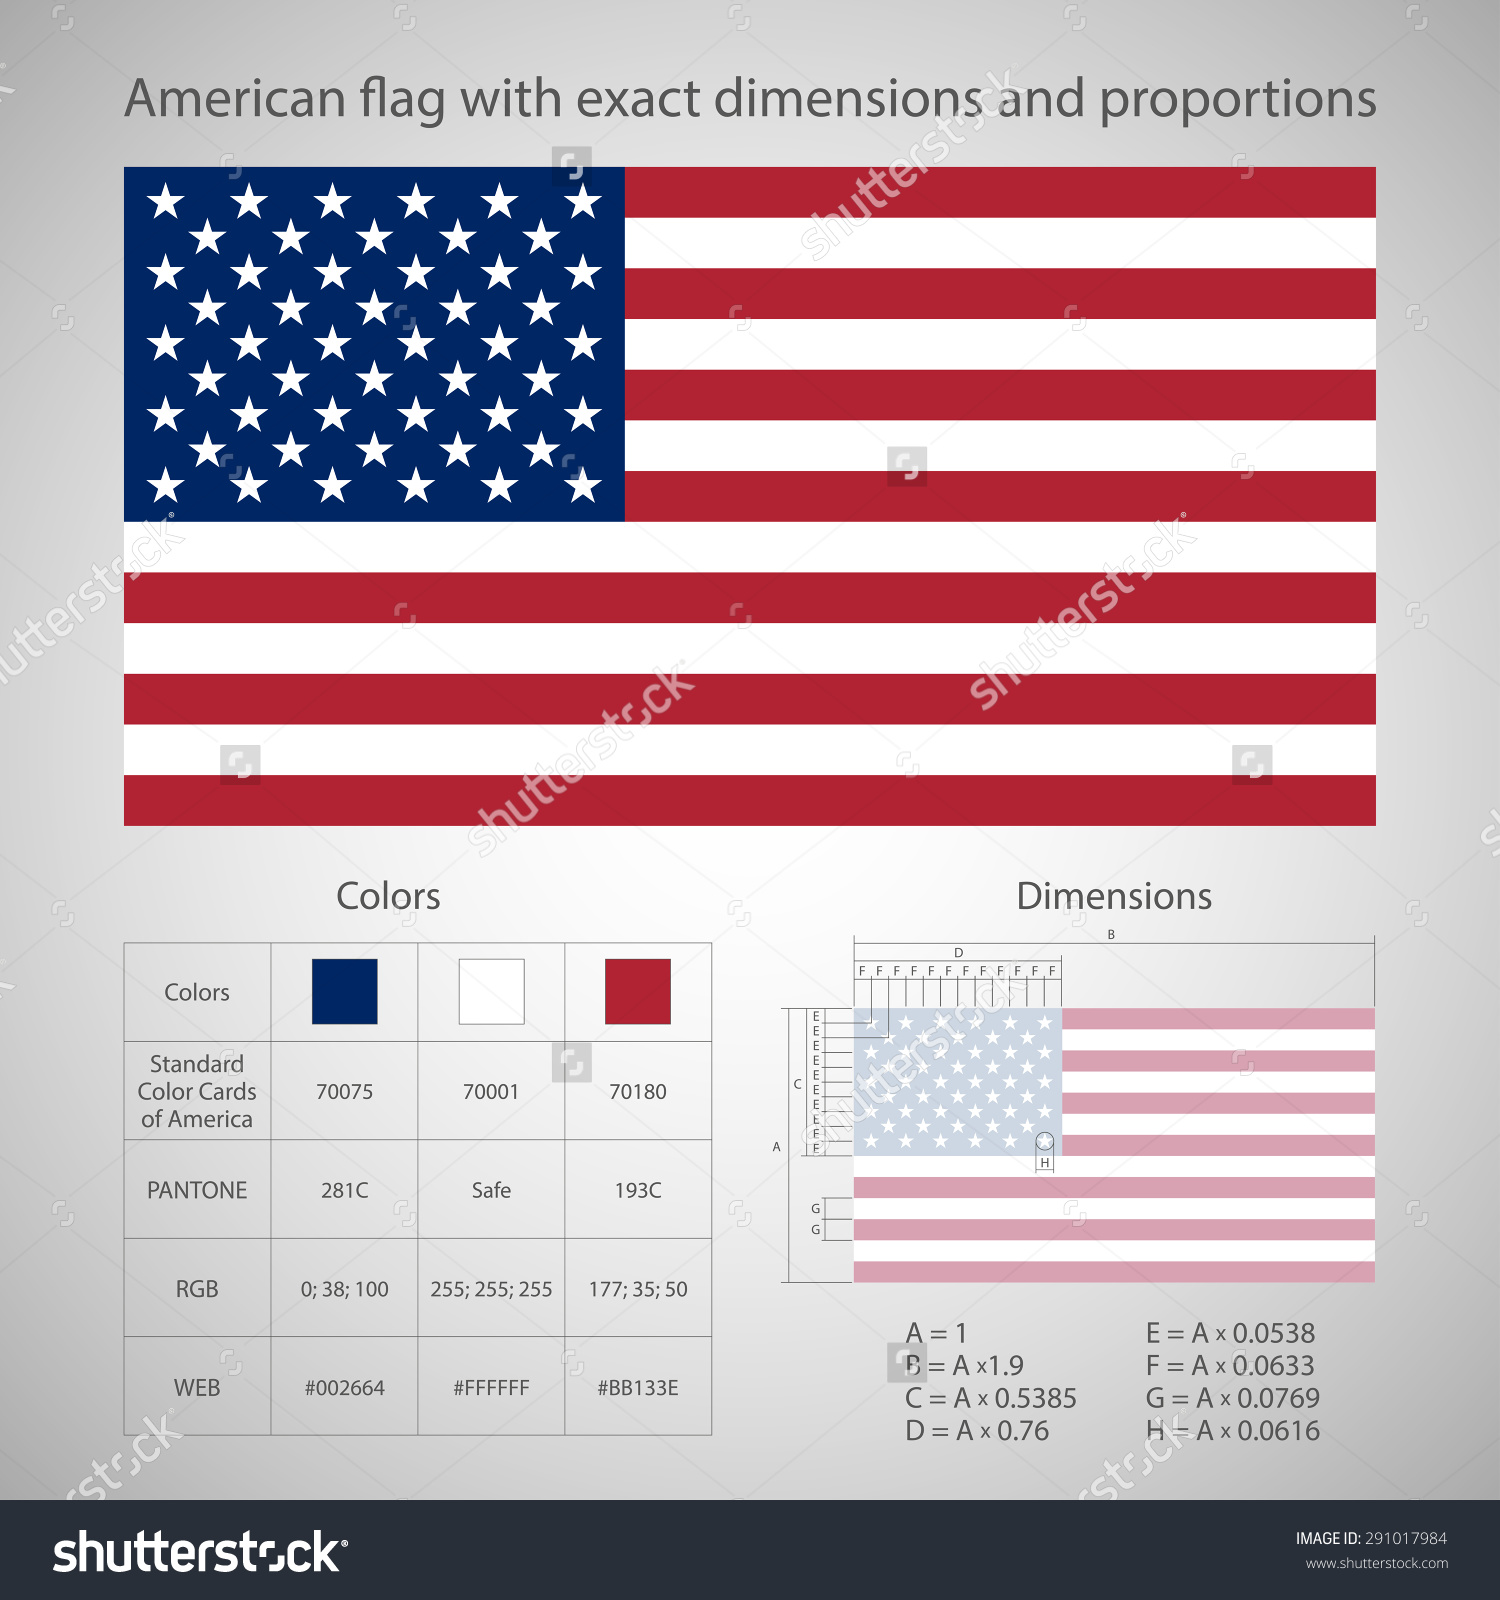 American Flag DimensionsWORLD Of FLAGS | WORLD Of FLAGS